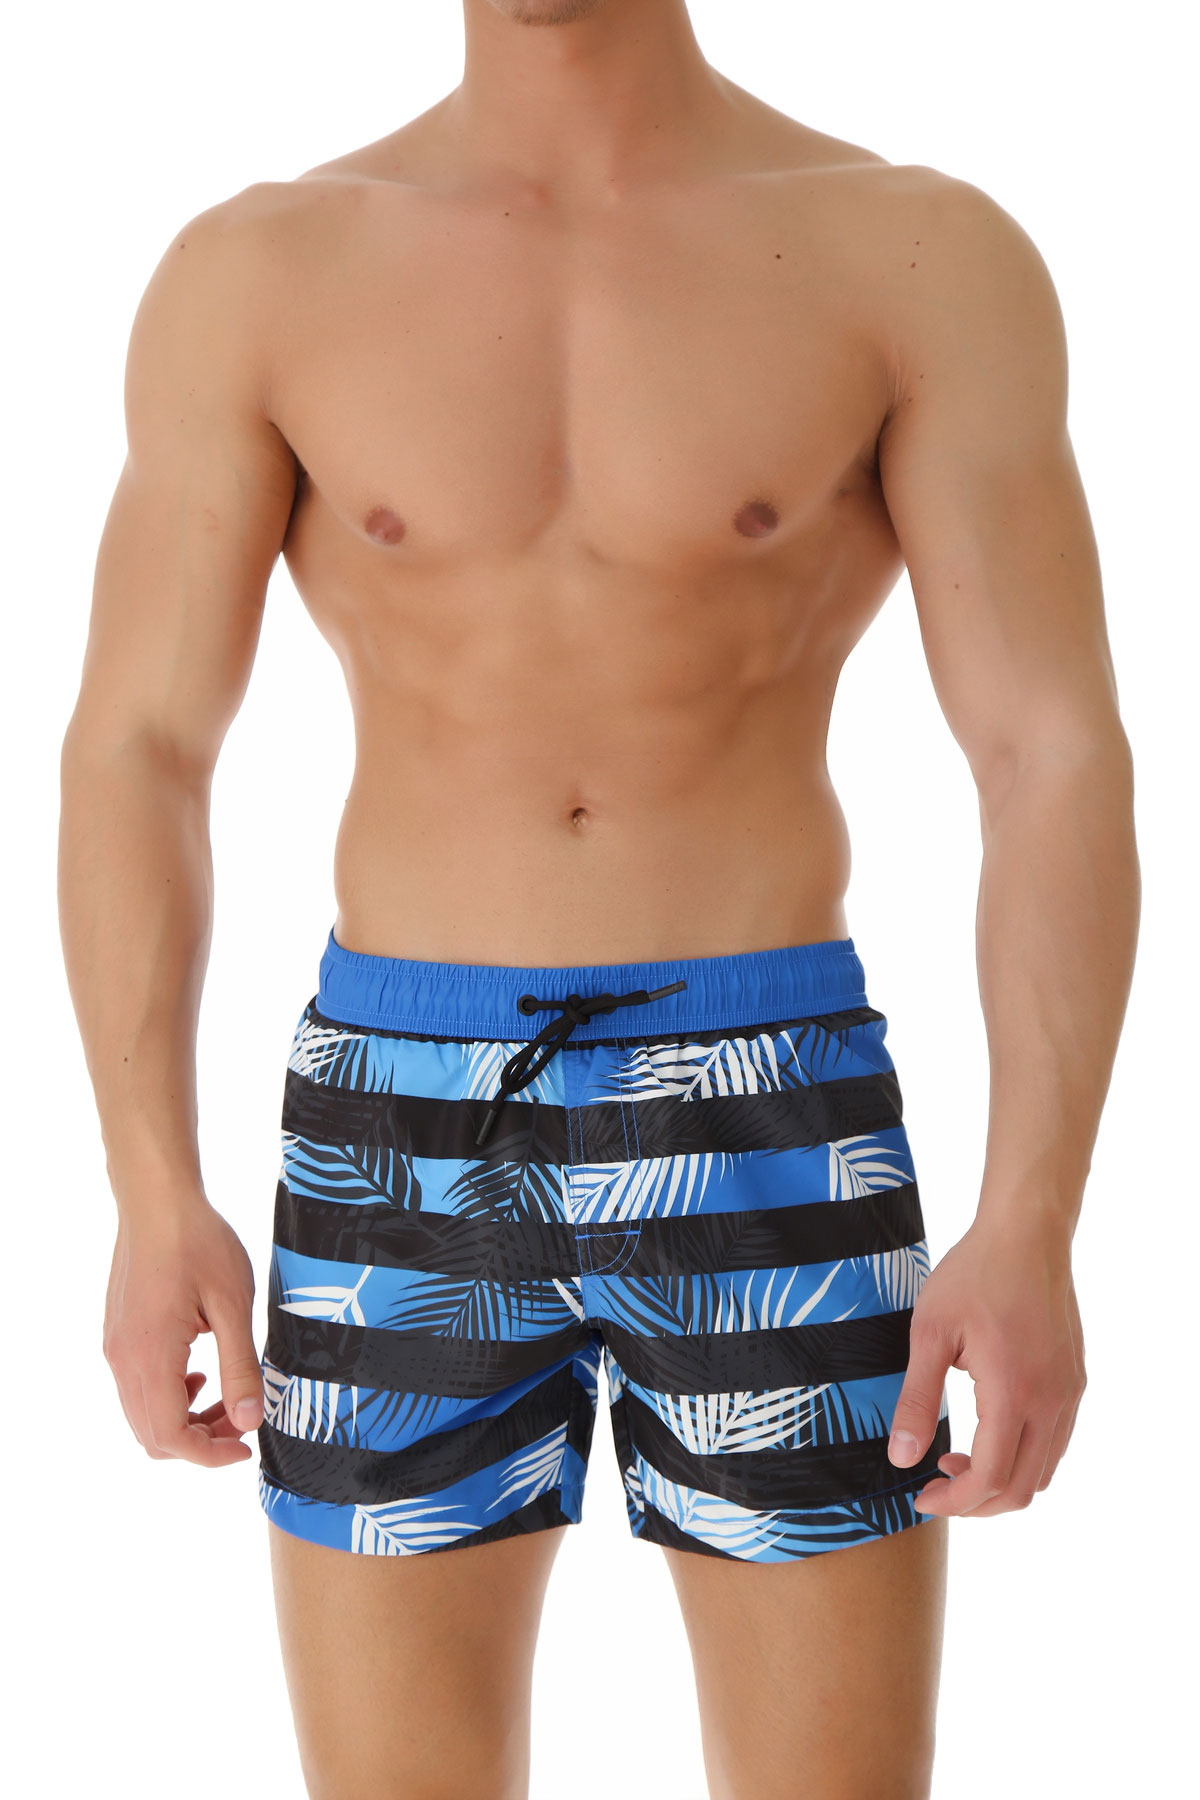 Bikkembergs Swim Shorts Trunks for Men On Sale in Outlet, Turquoise, polyester, 2019, S L XL